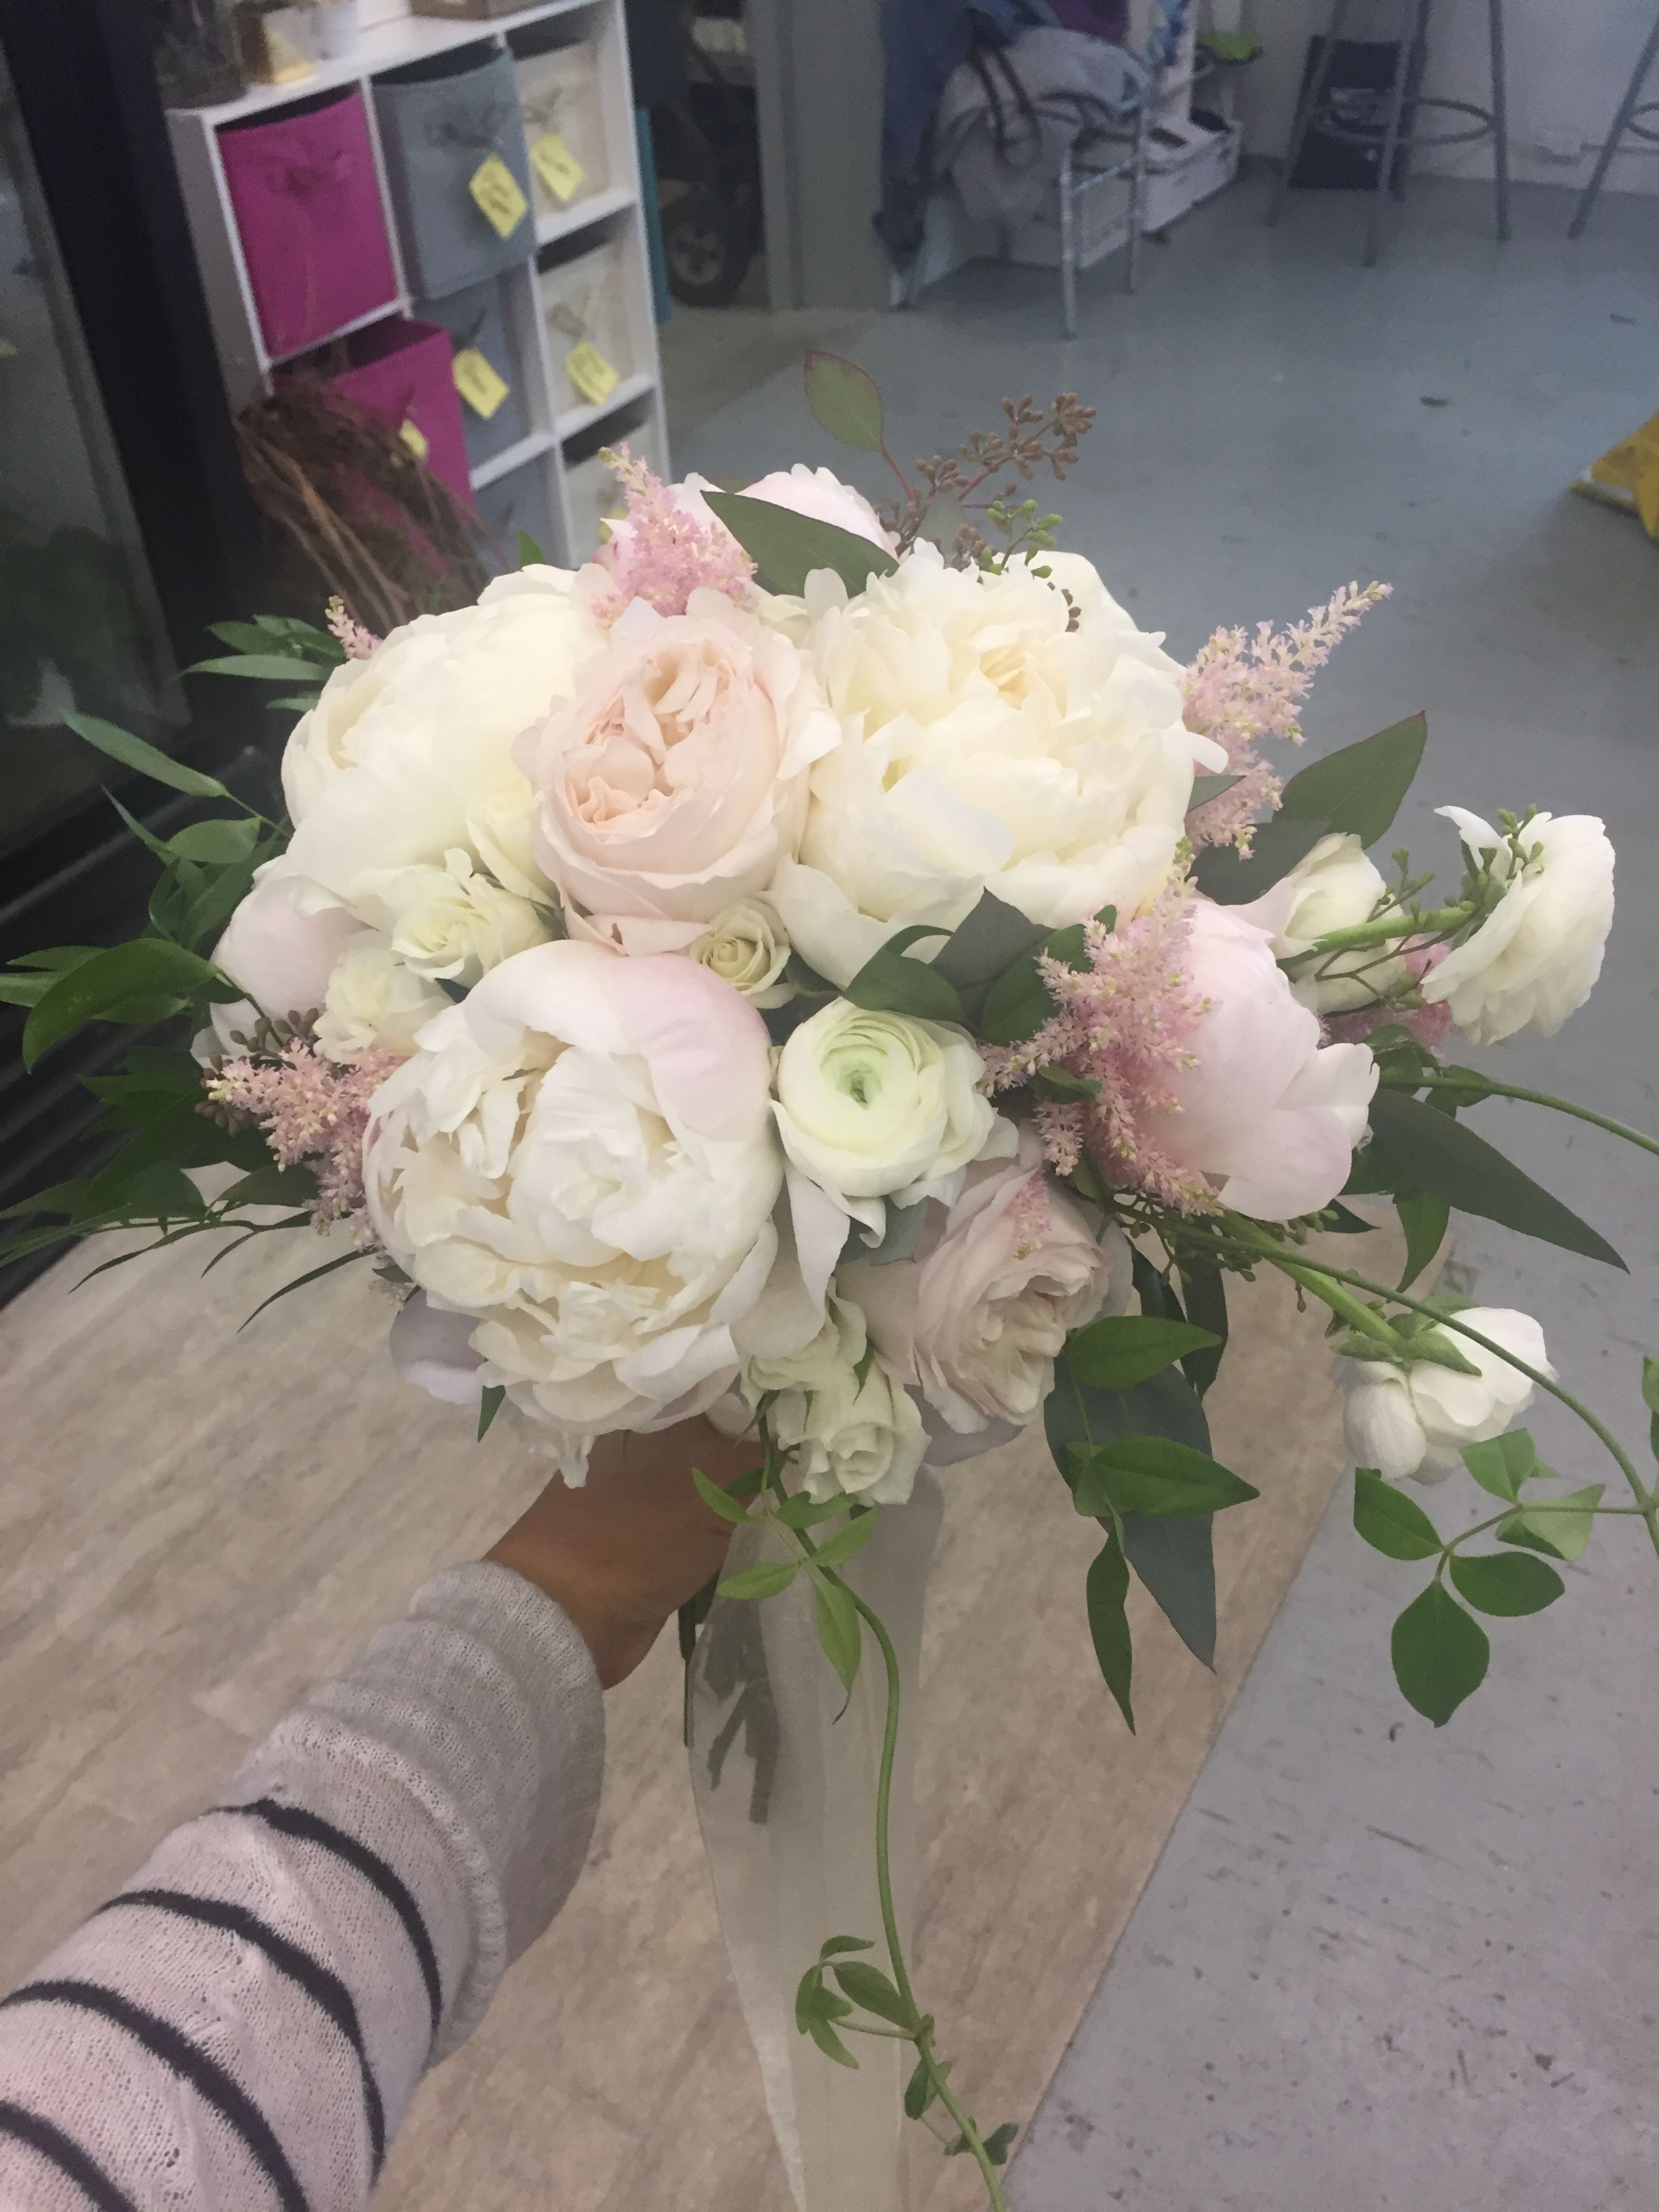 I Love The Flowers Peonies Roses Ranunculus And Astilbe And The Shades Of Pink And Ivory I Peony Bouquet Wedding Wedding Flowers Peonies Wedding Bouquets